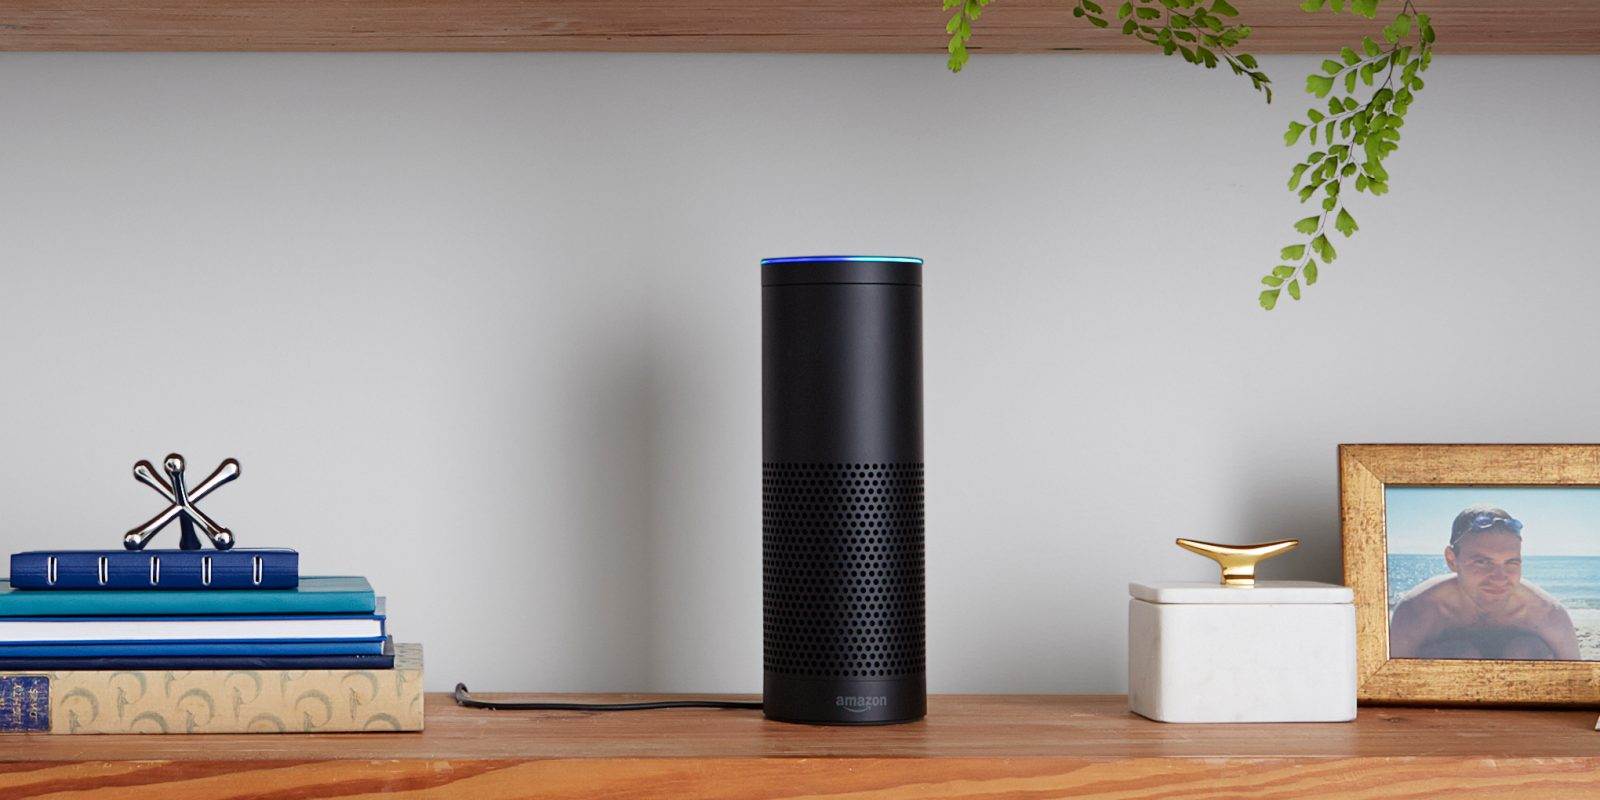 The first-generation Echo Smart Speaker starts your smart home for $30 (Refurb)